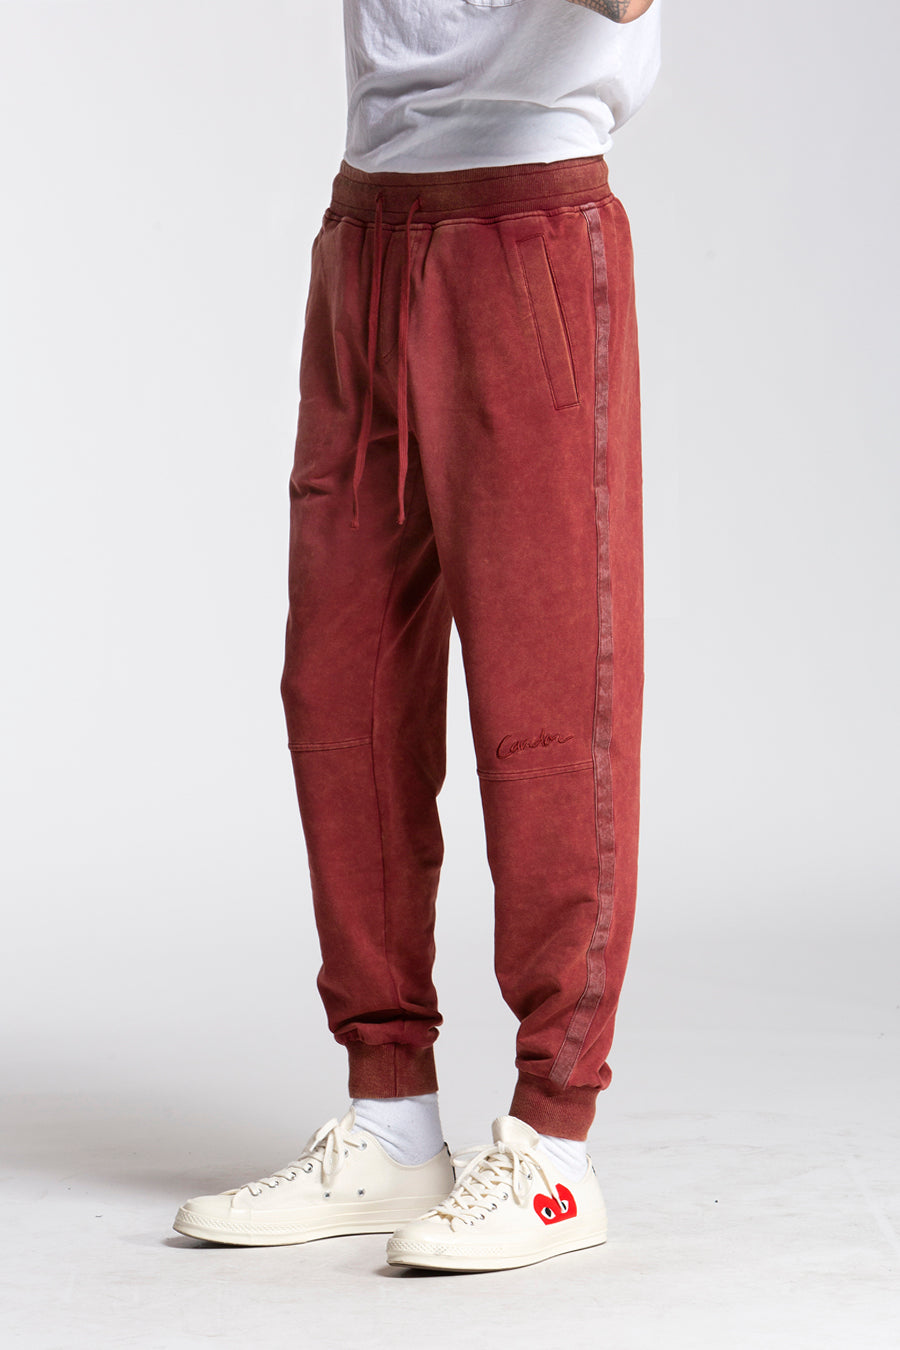 candorofficial - Washed Sweatpants, Maroon - Bottoms